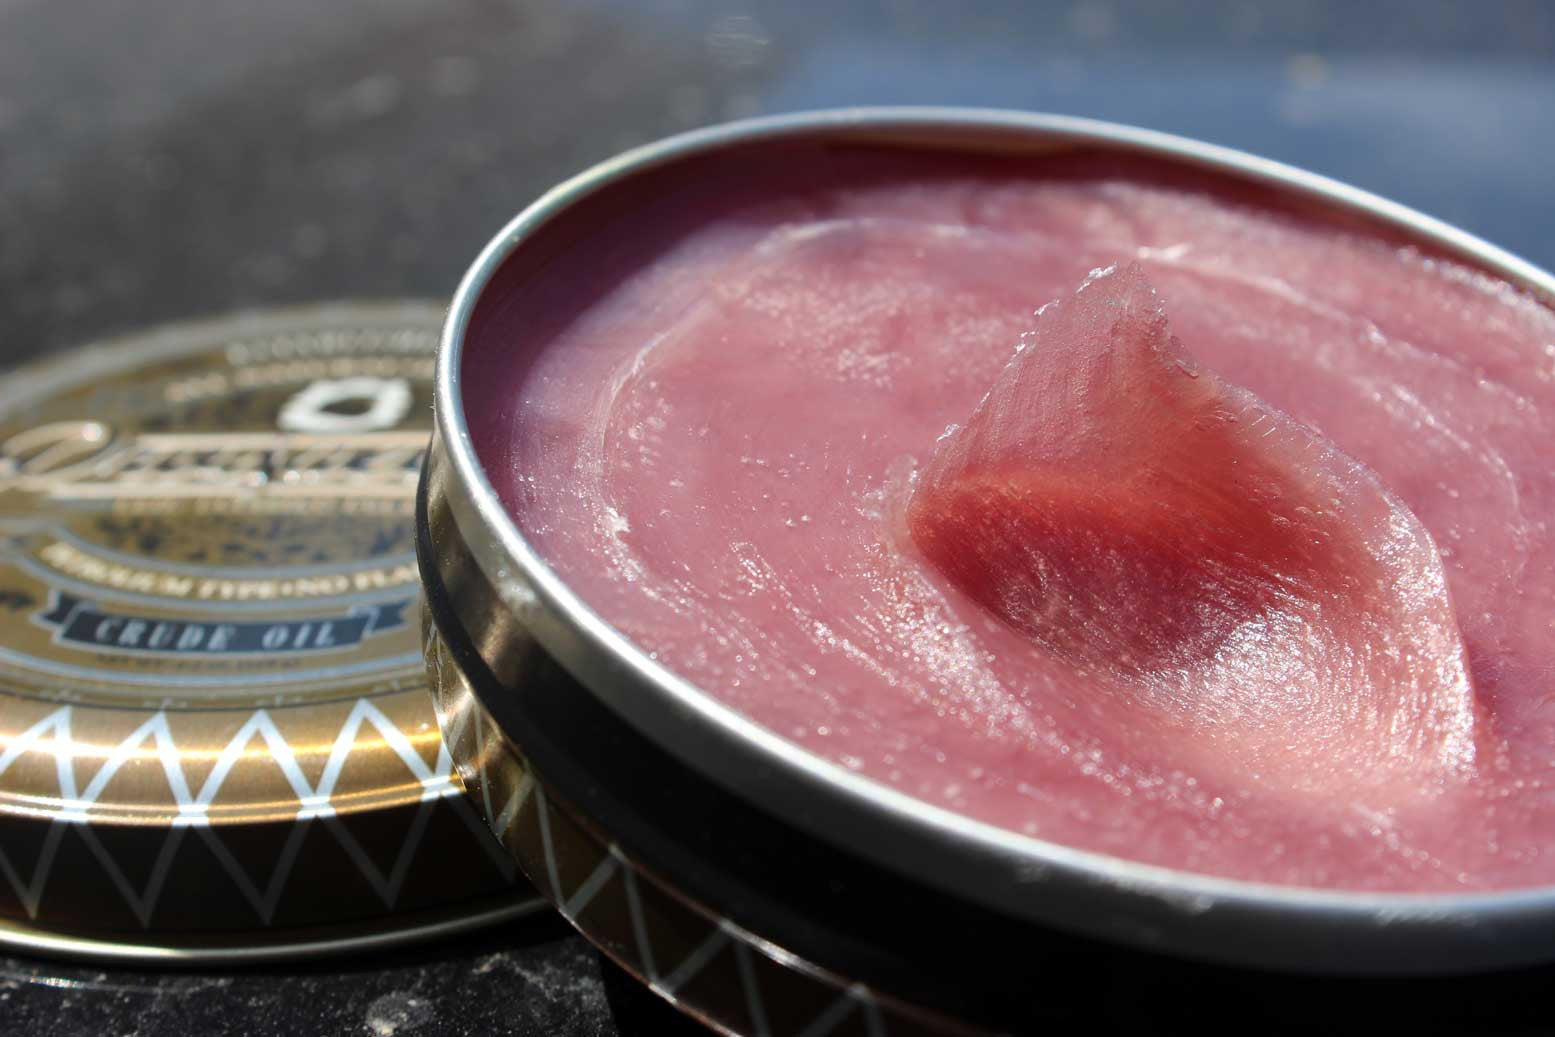 prospectors oil based pomade is pink purple